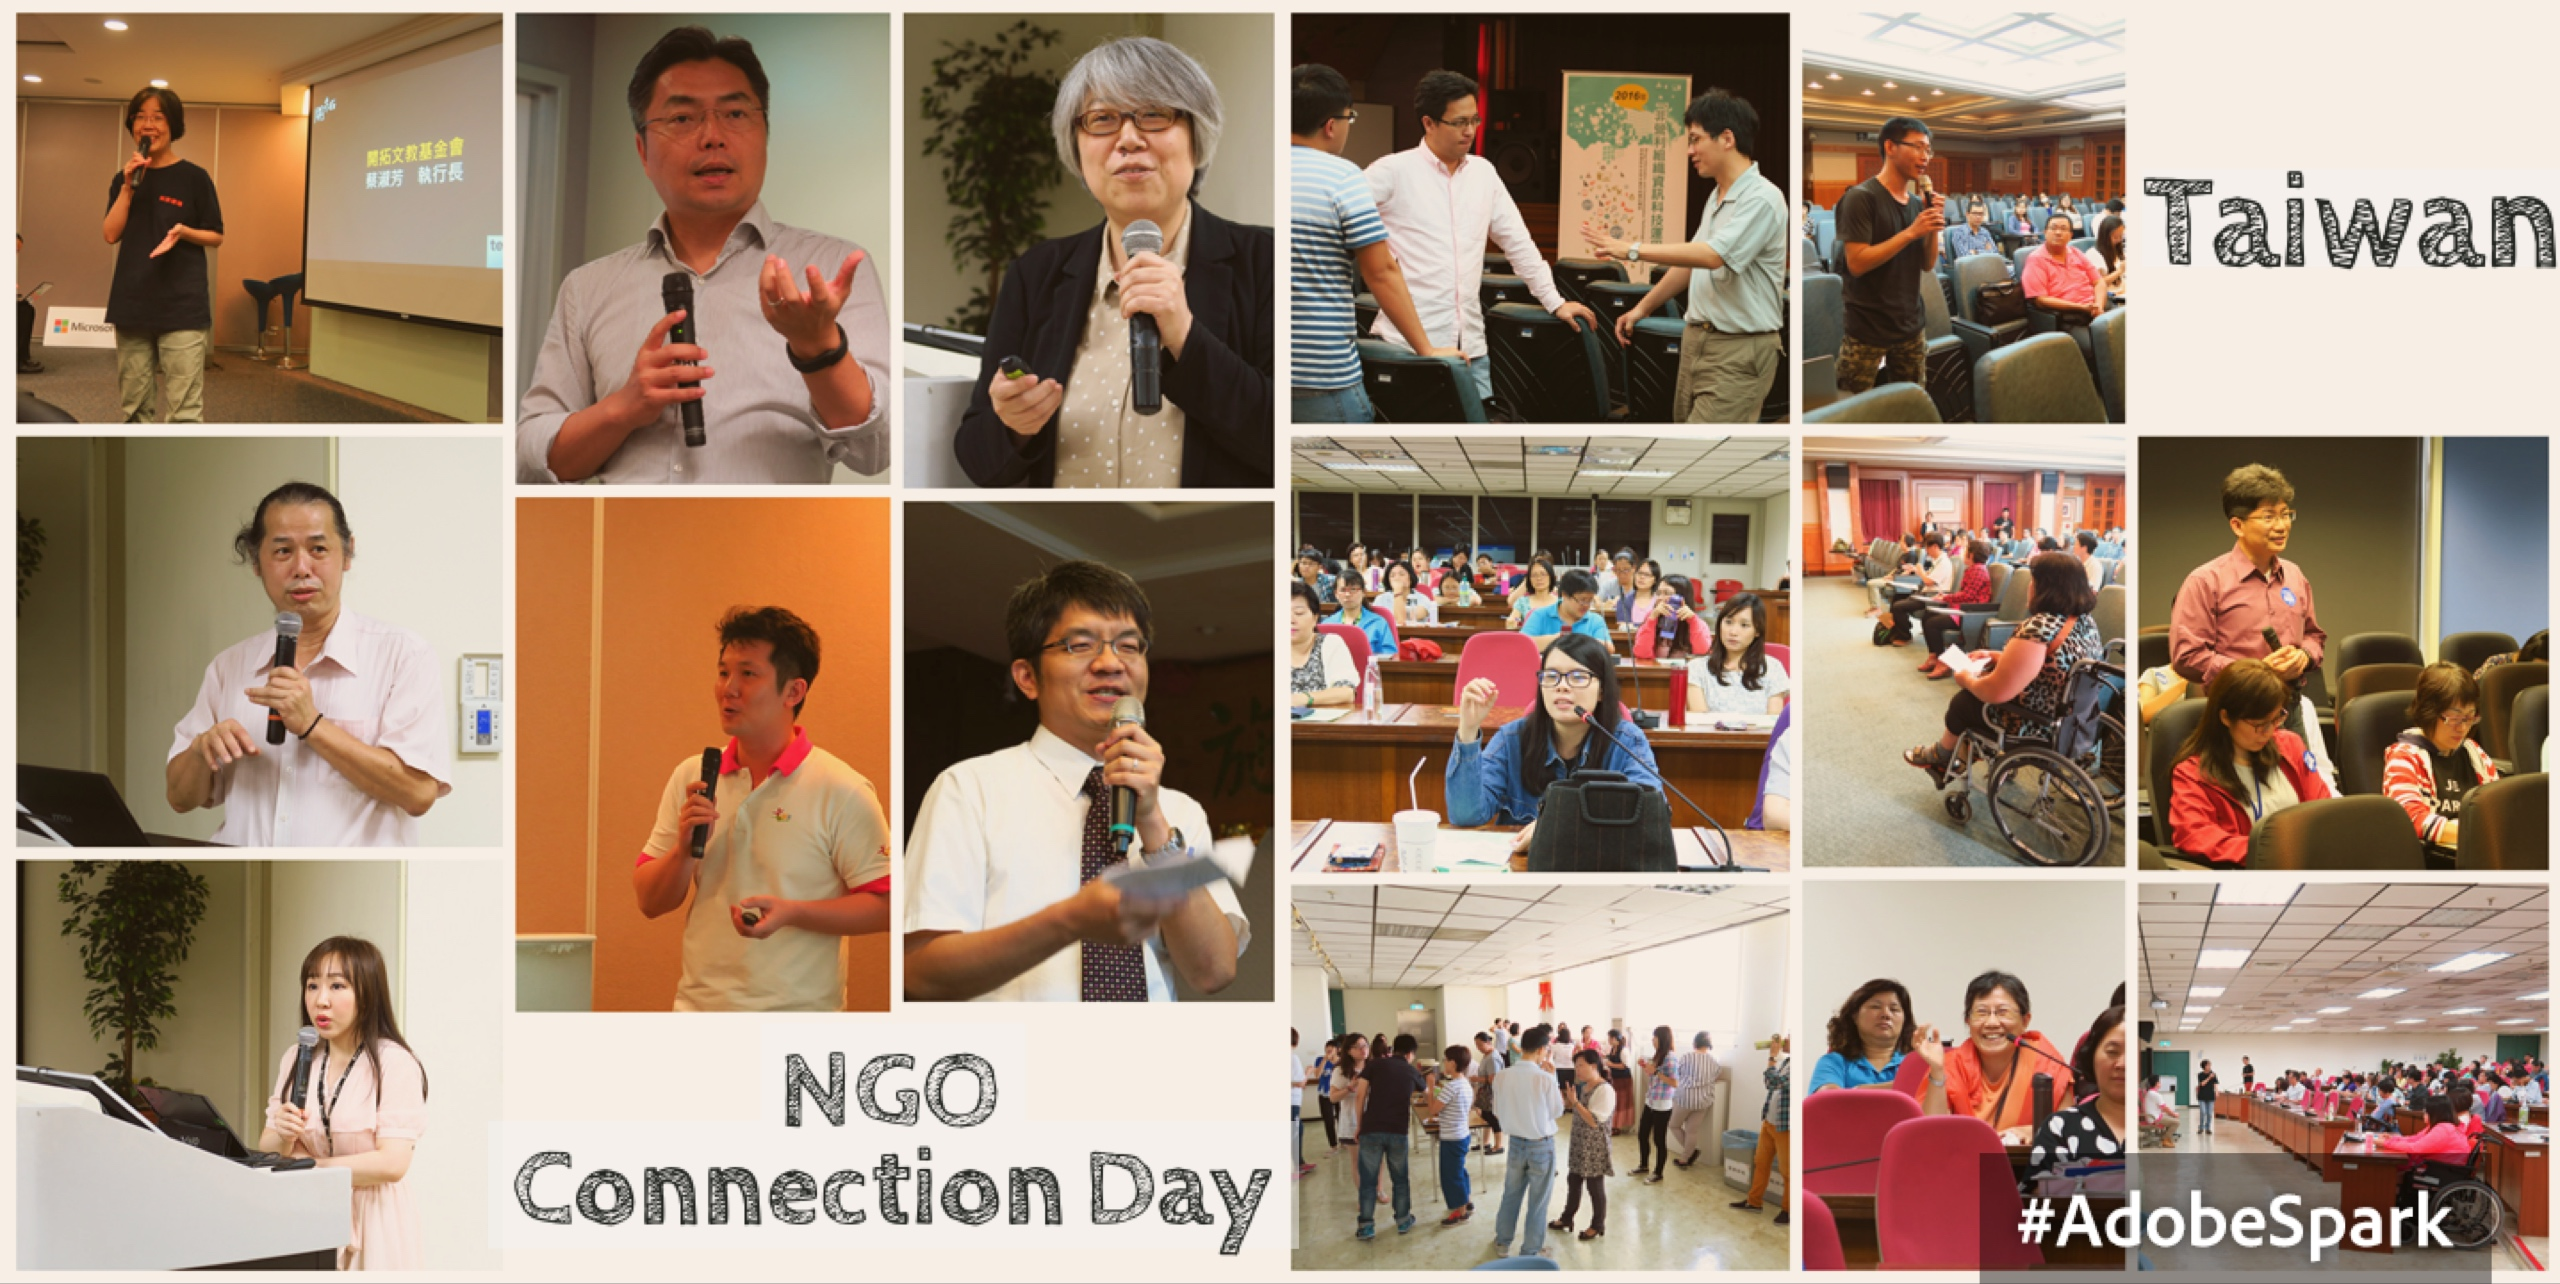 NGO Connection Day in Taiwan